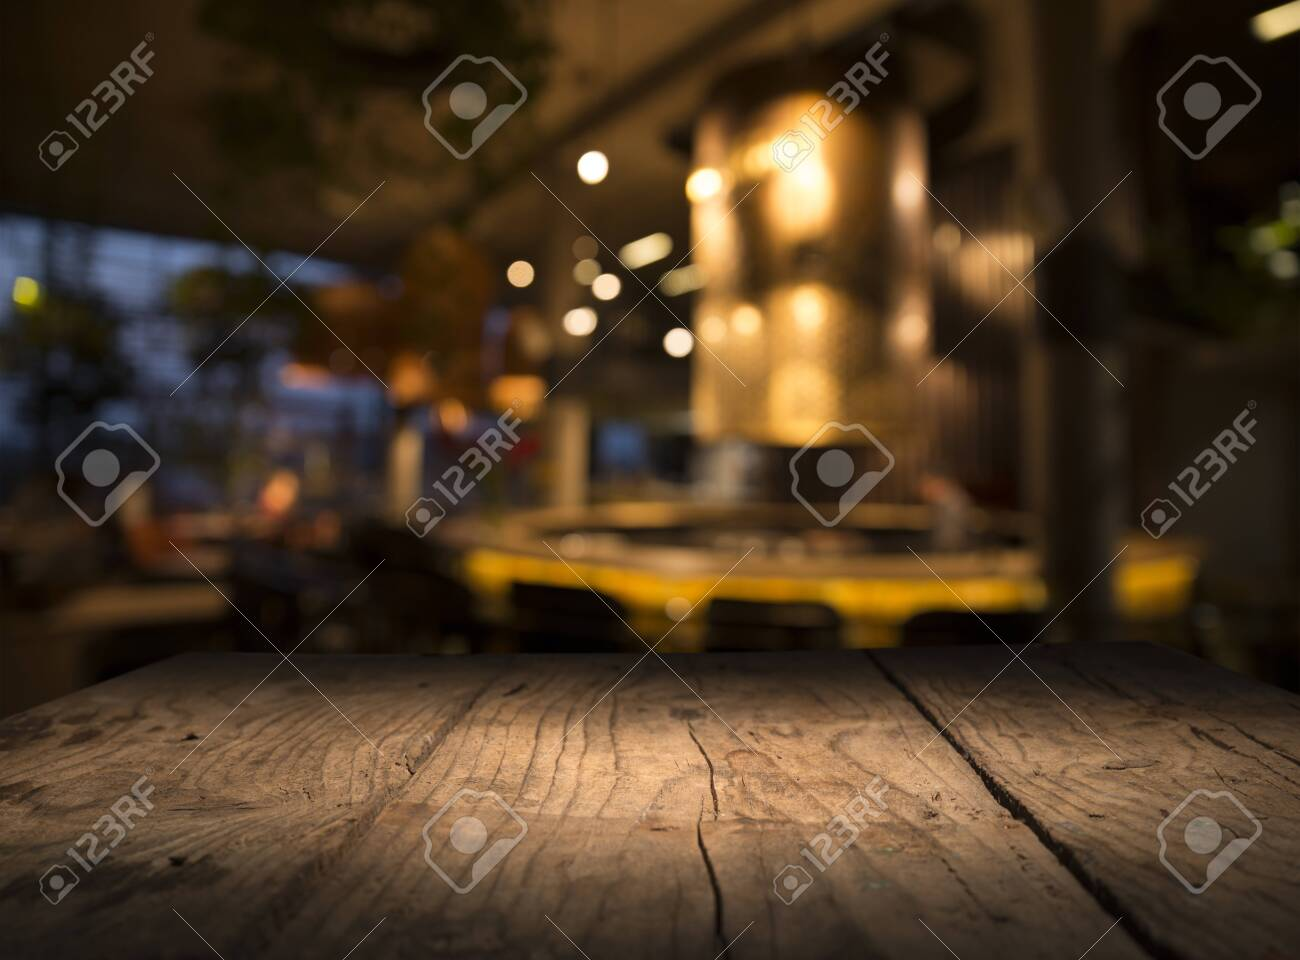 Empty Wood Table Top On Blur Light Gold Bokeh Of Cafe Restaurant Stock Photo Picture And Royalty Free Image Image 130729225